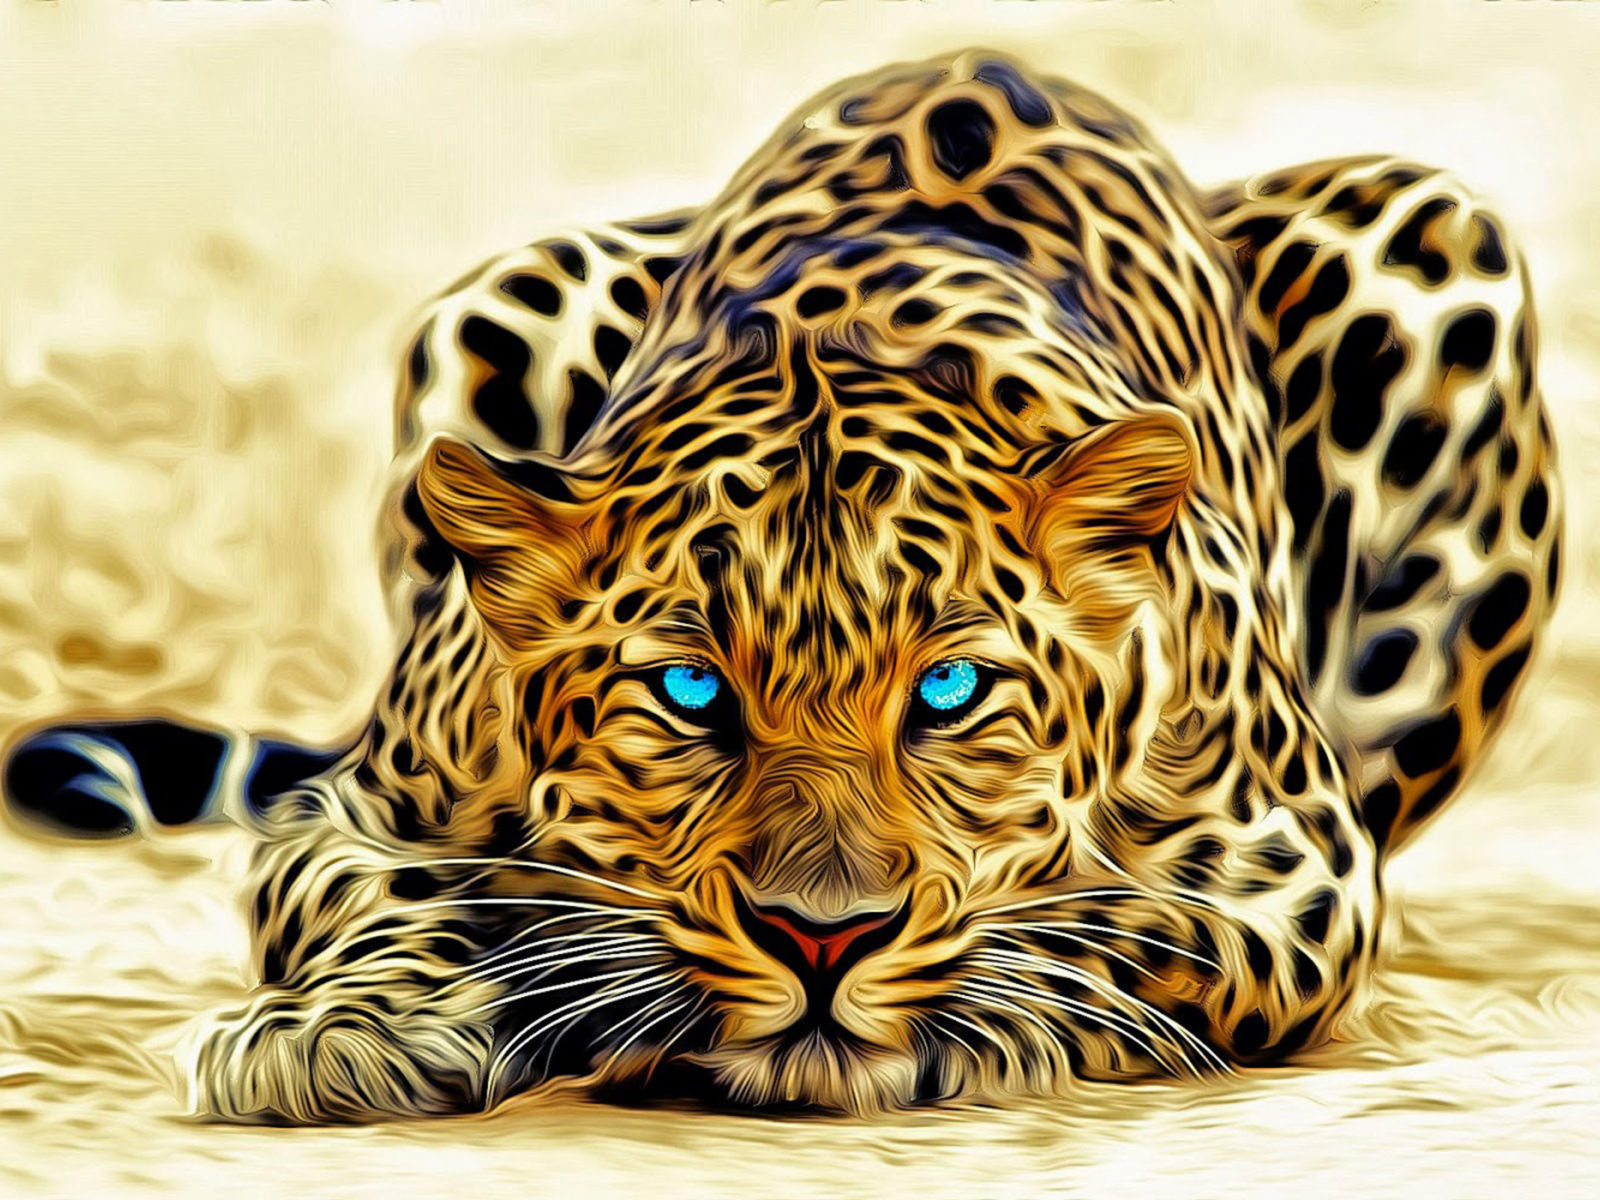 Bobcat Wallpaper Hd Leopard Art Abstract 3d Wallpaper Hd 3840x2400